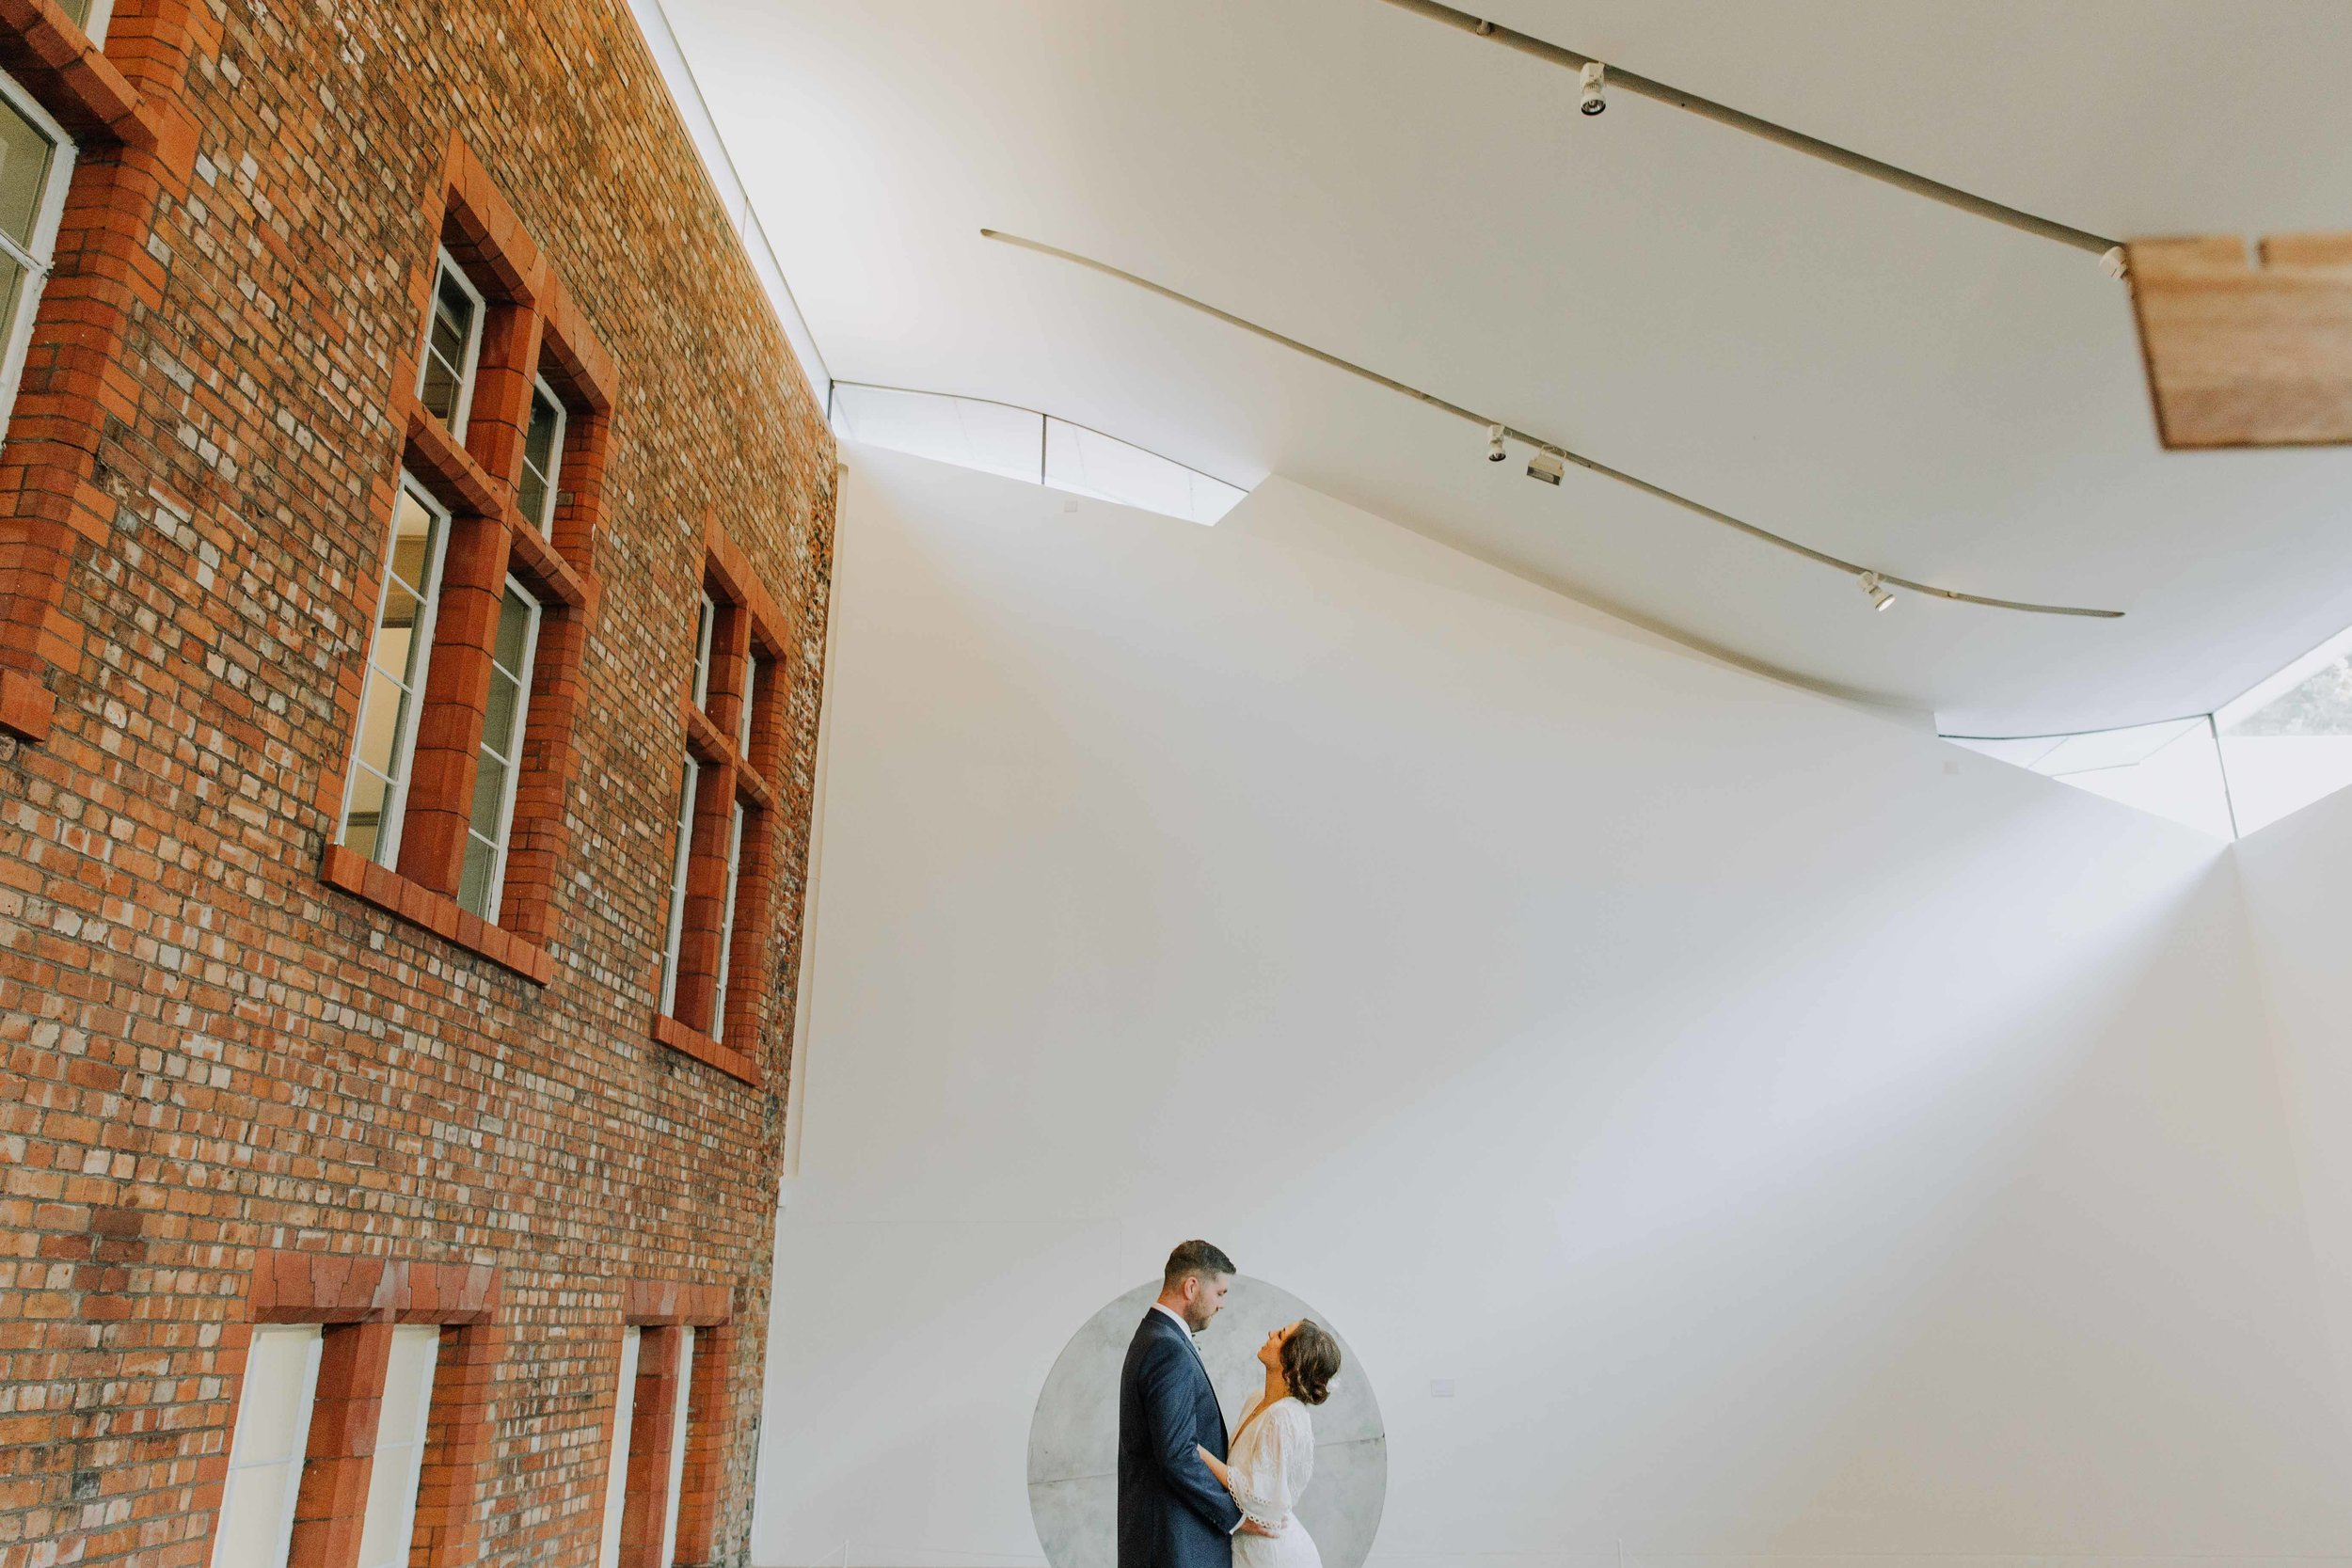 The Whitworth Art Gallery Manchester wedding